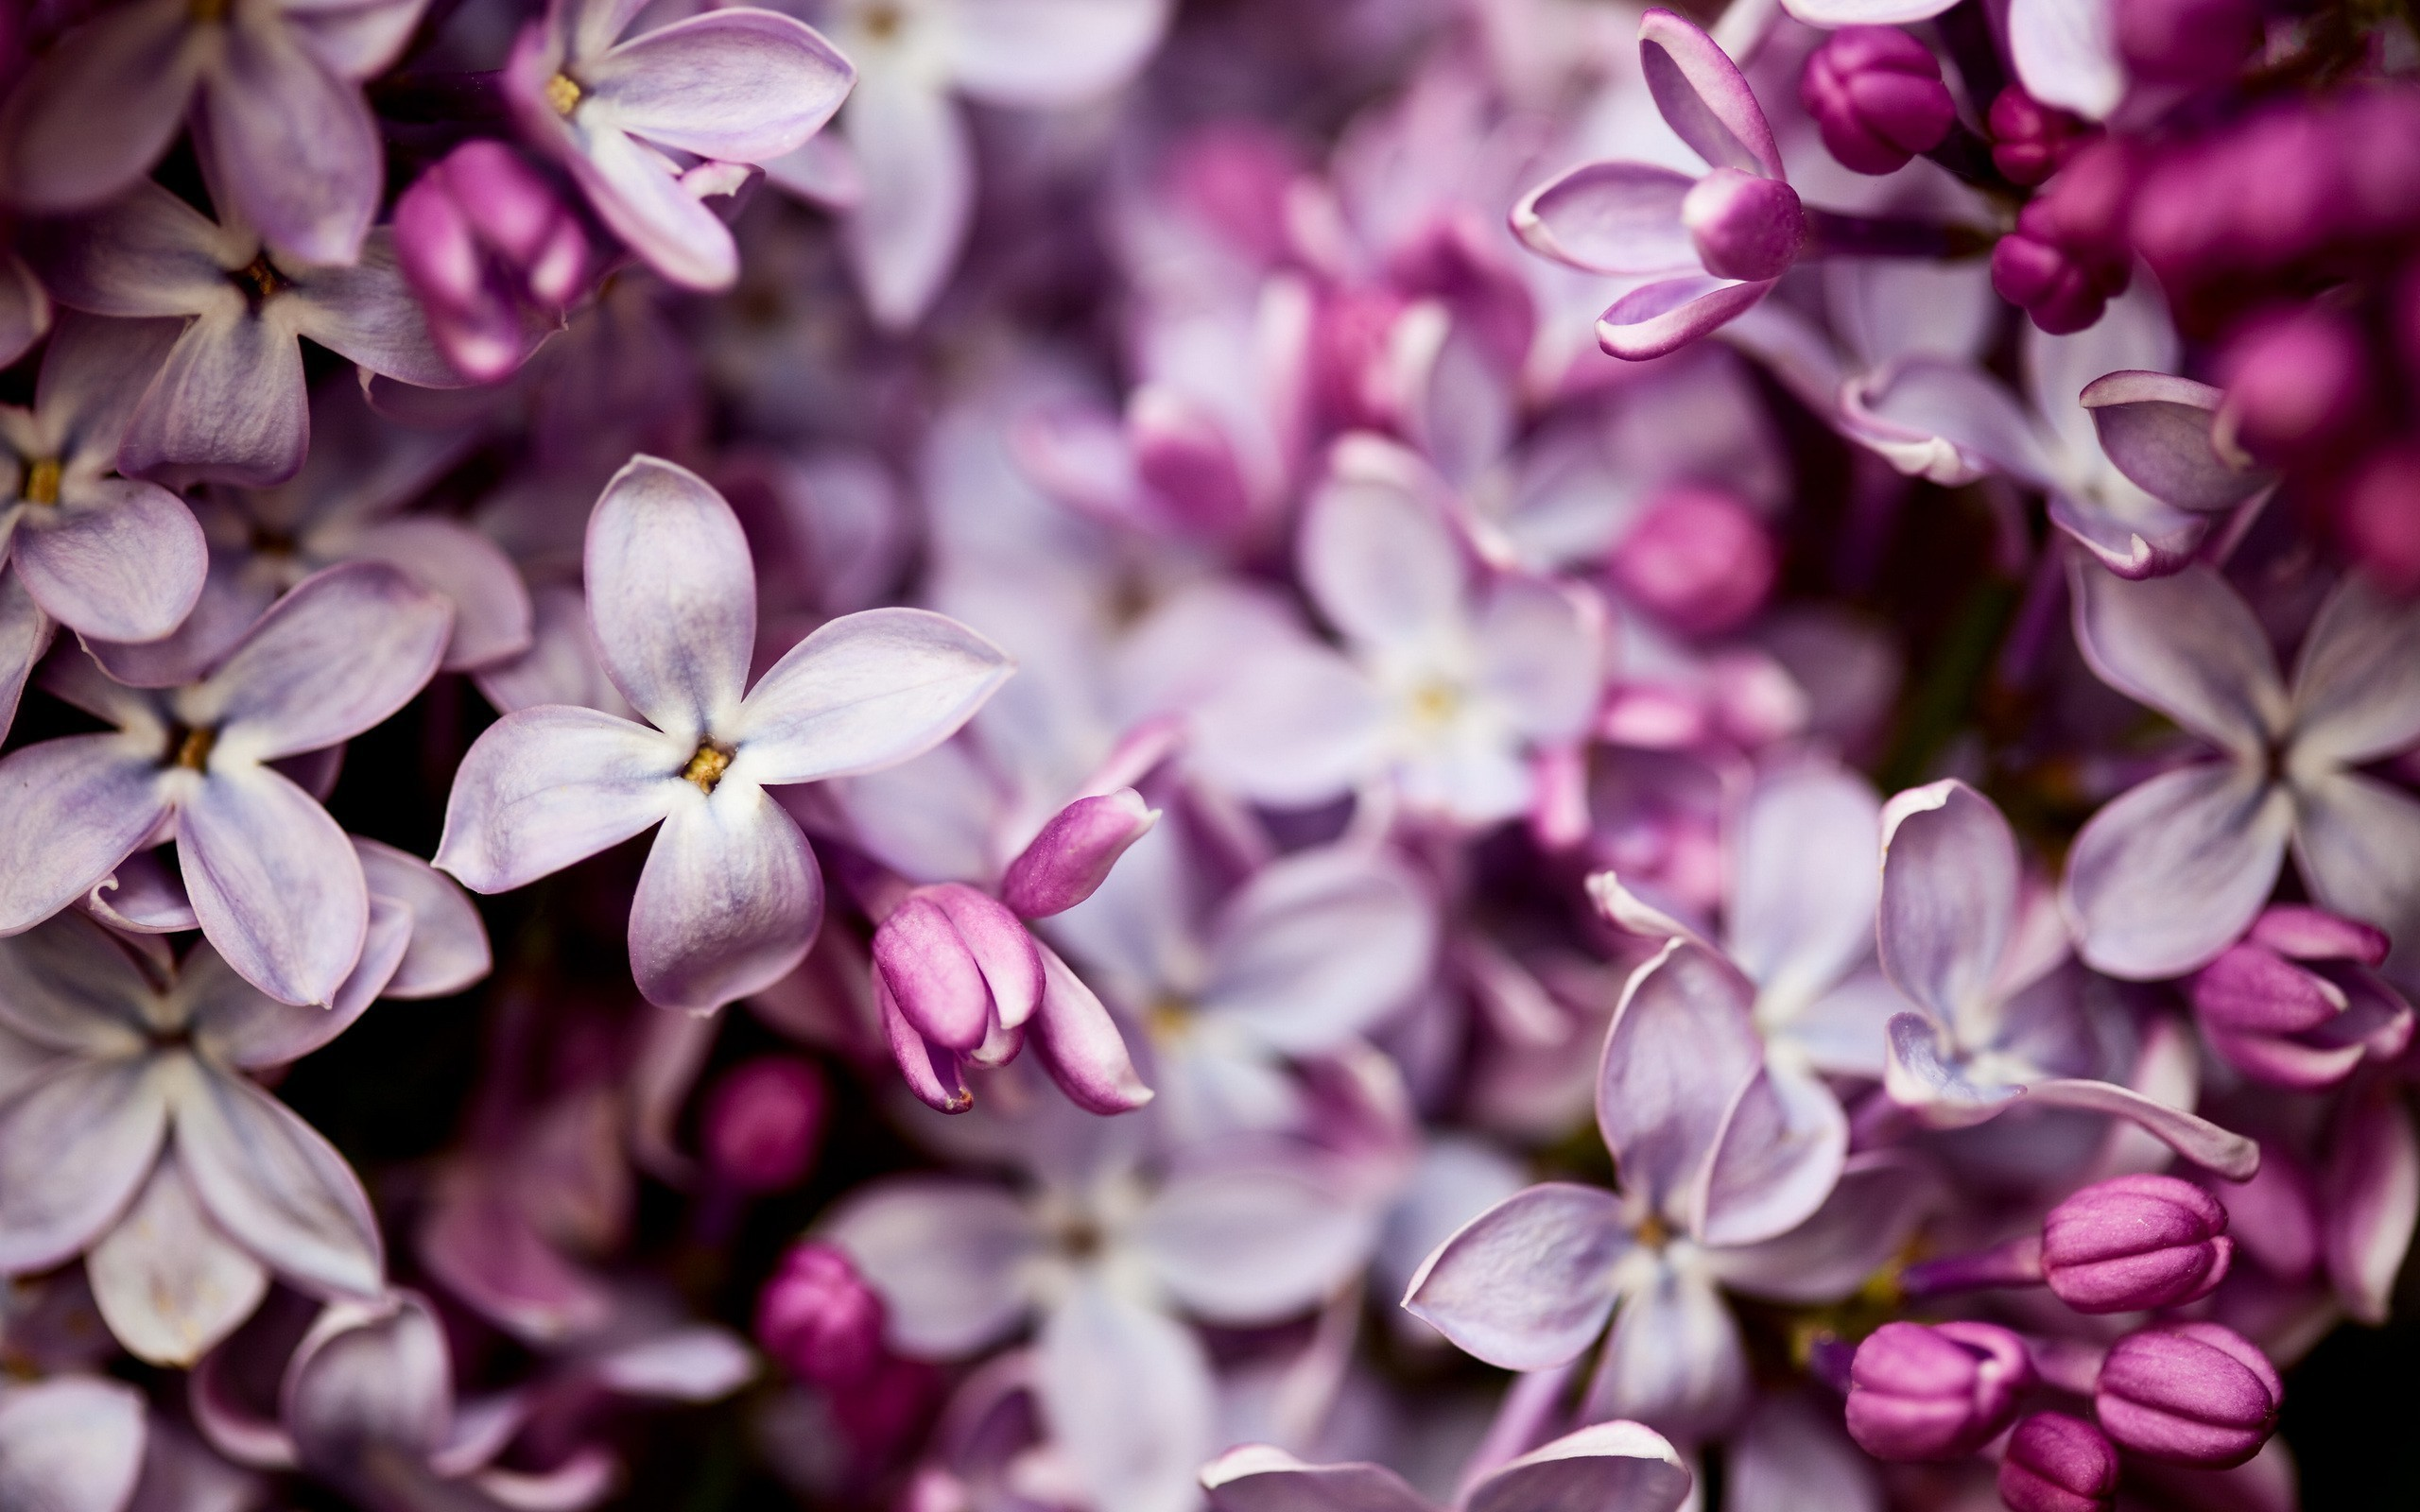 lilac flower wallpaper jpg - photo #27